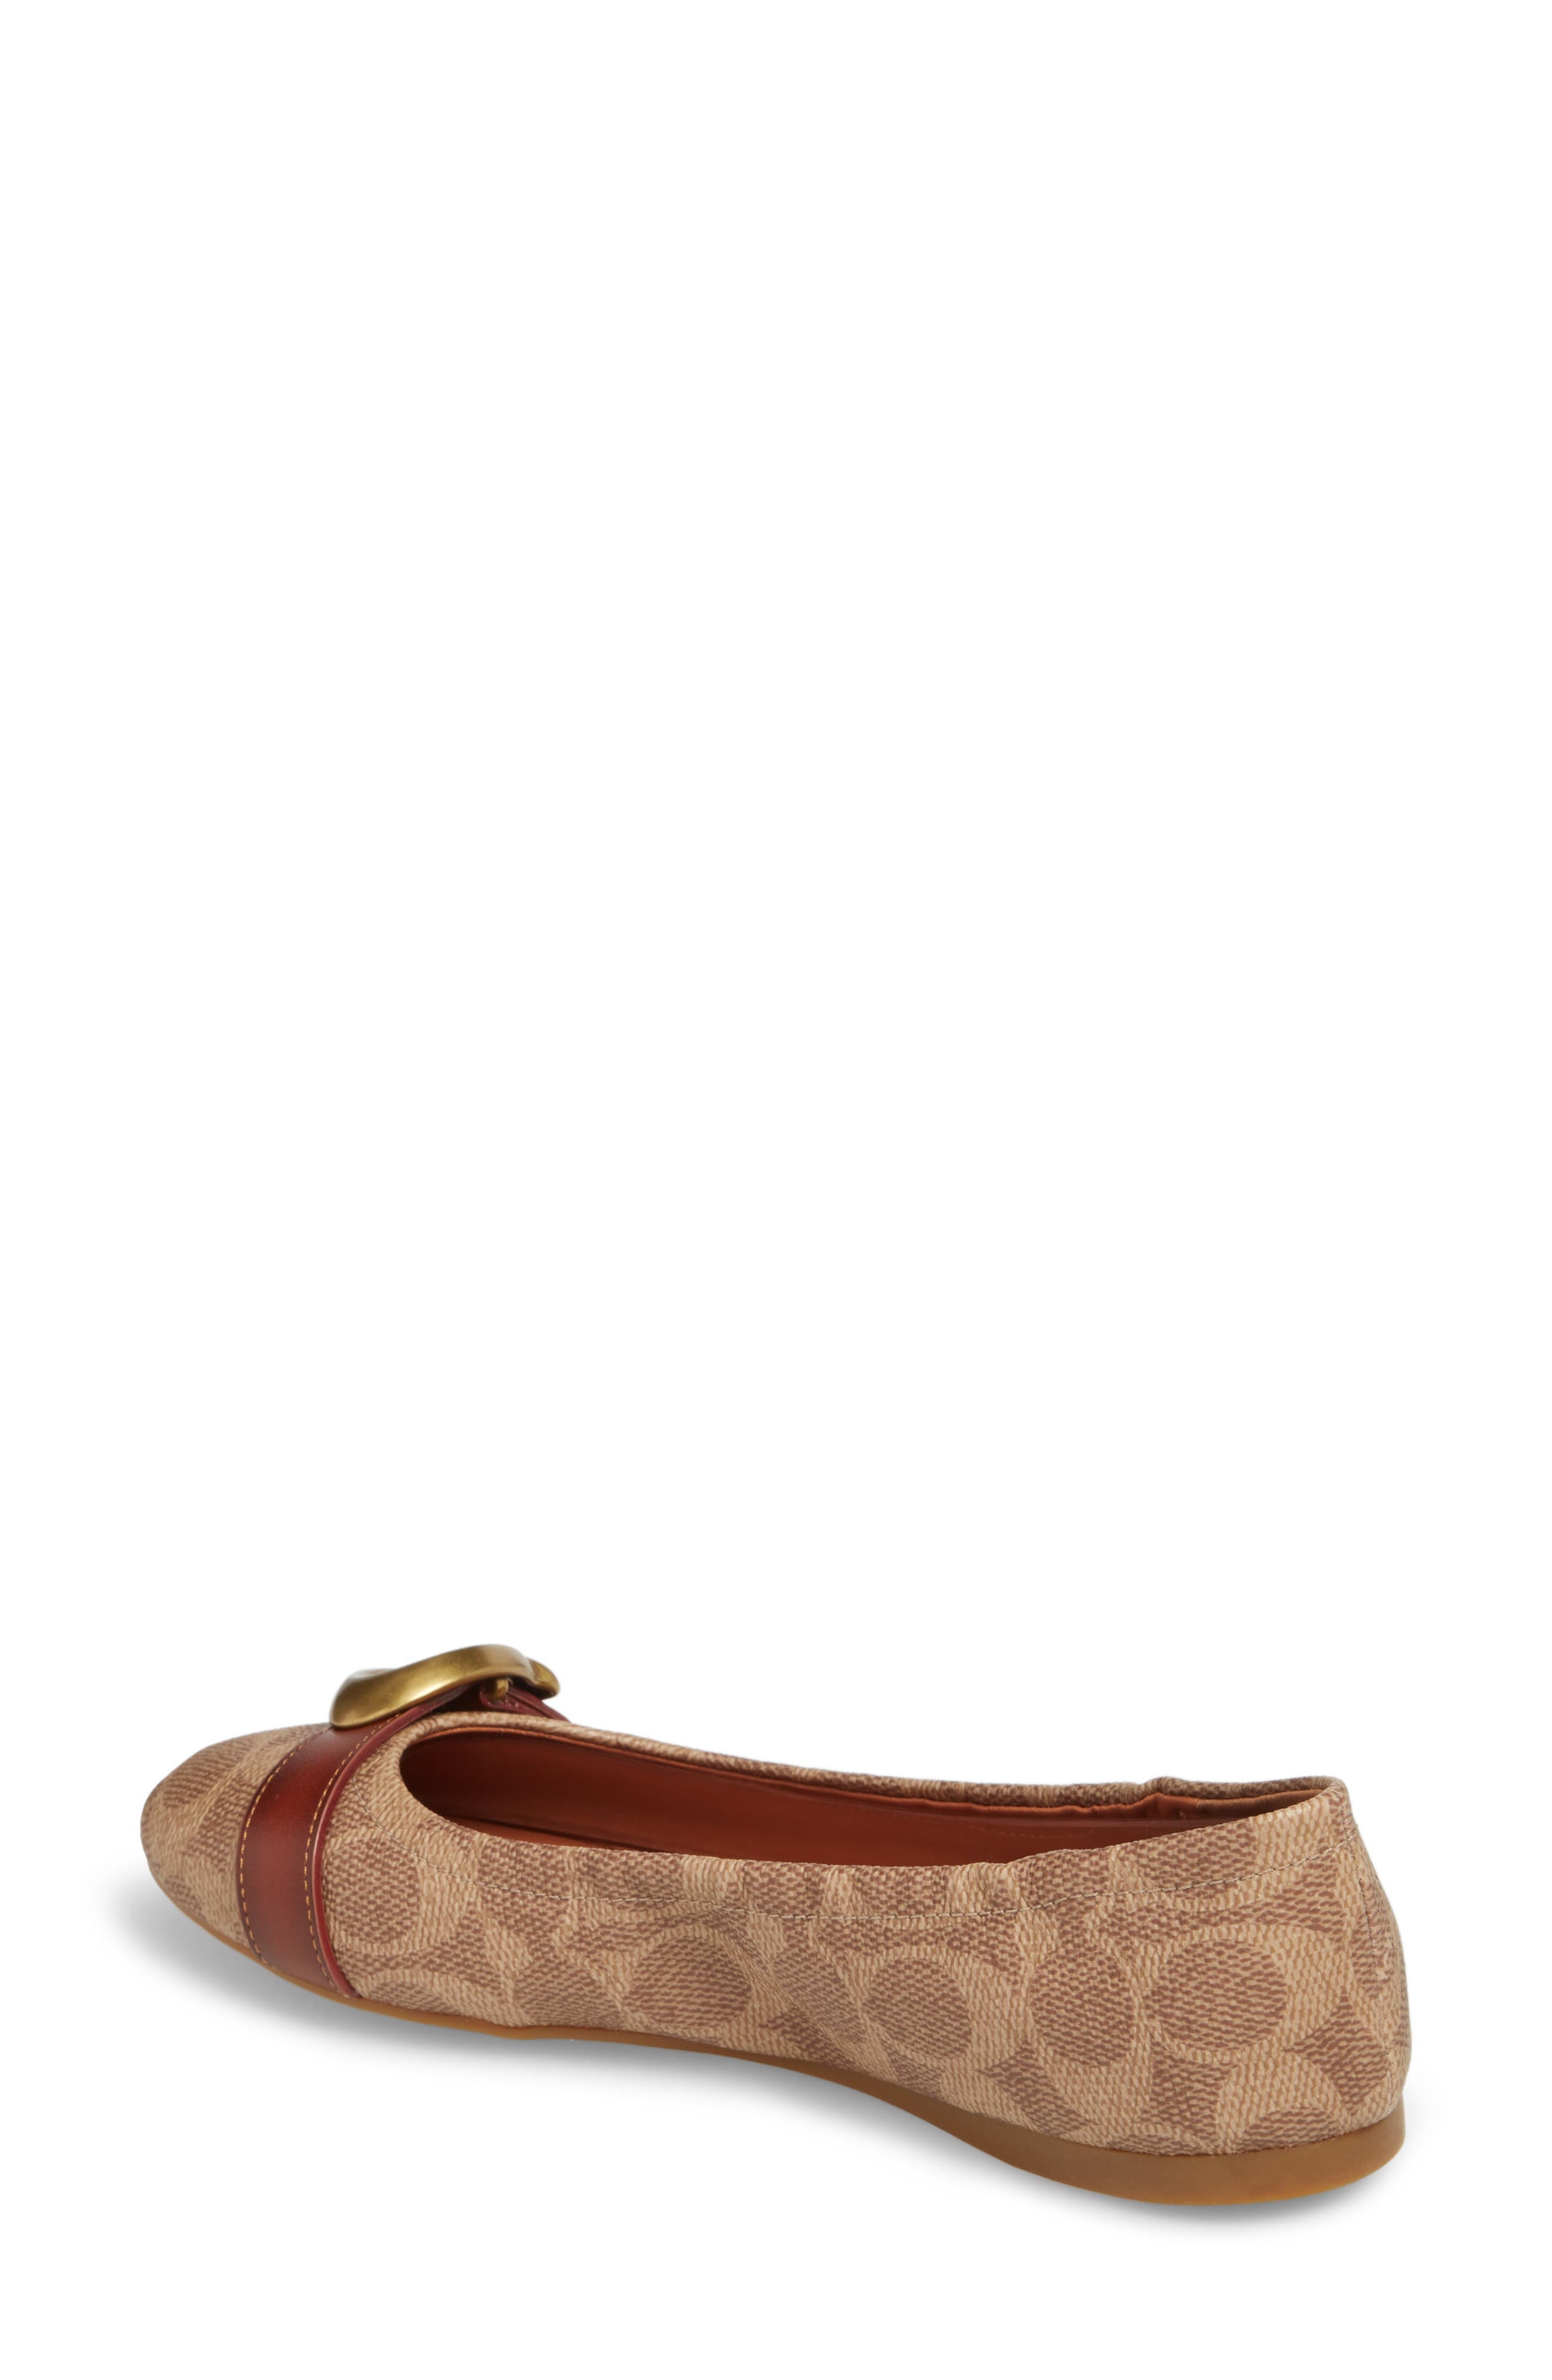 COACH, Stanton Buckle Flat, Alternate thumbnail 2, color, BROWN LEATHER